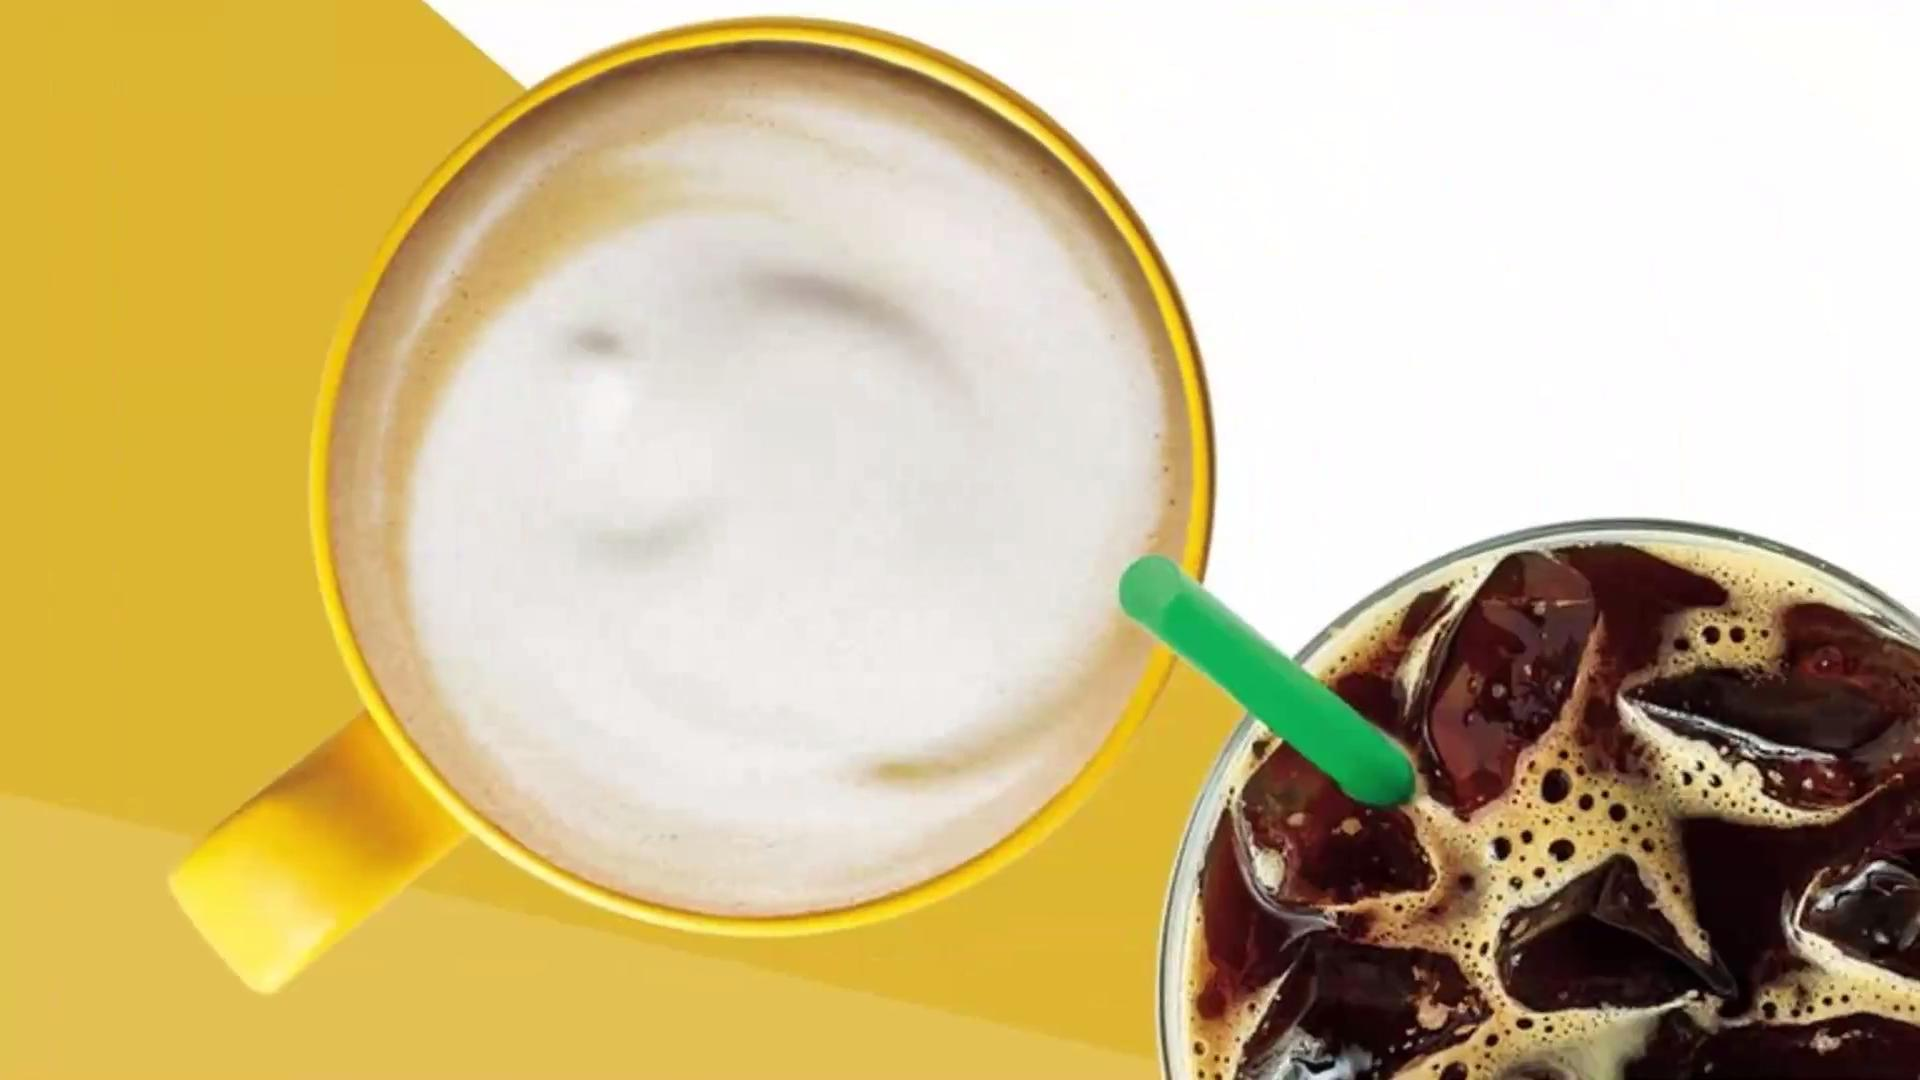 With Blonde Espresso, Starbucks Puts Even More Choices on Its Menu ...